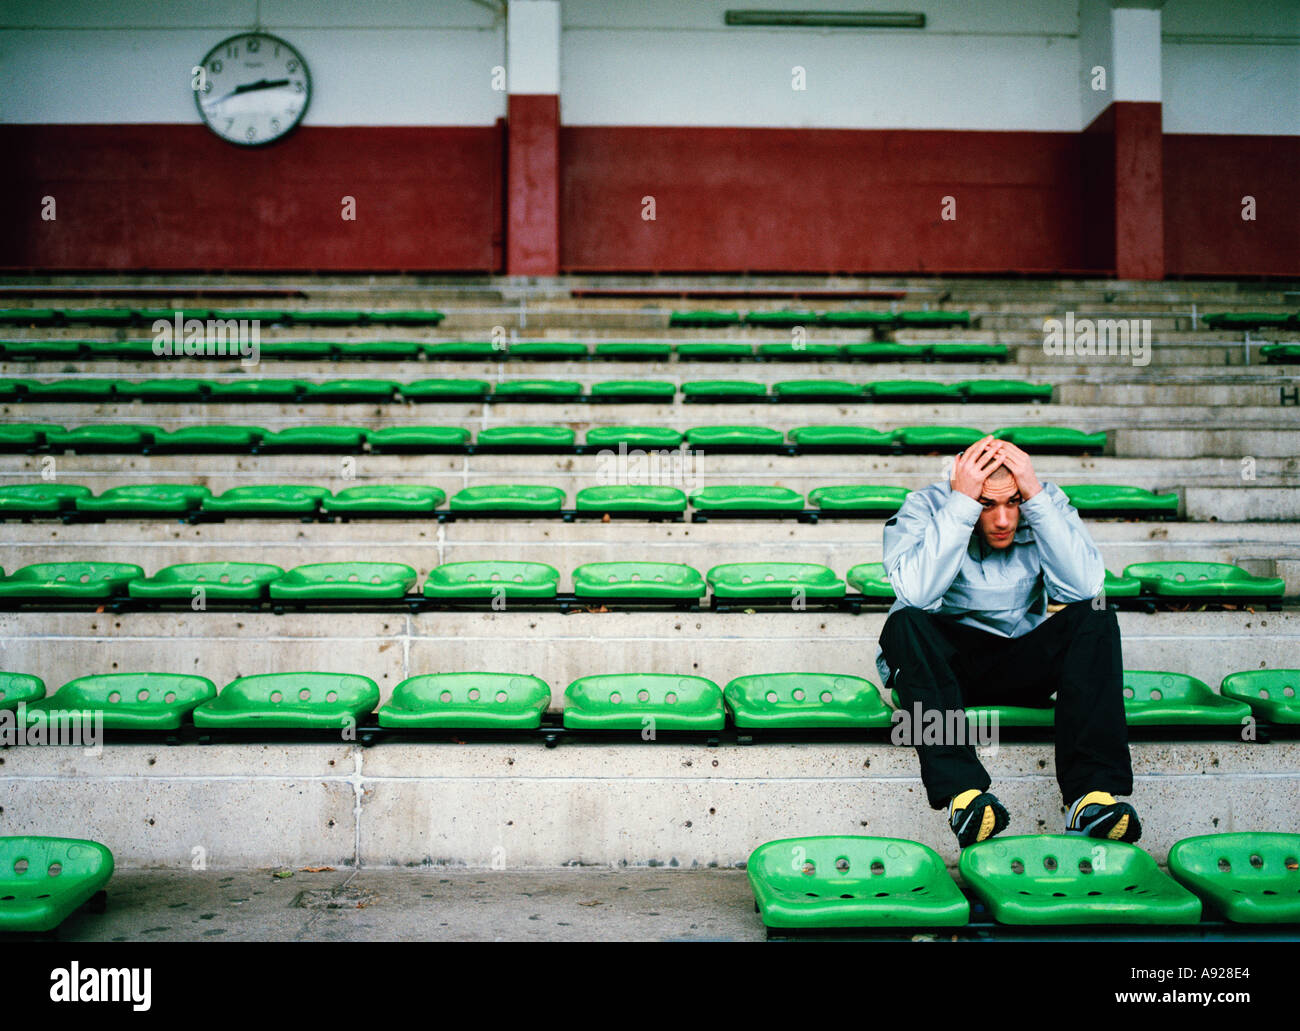 SAD LONELY YOUNG MAN IN STADIUM - Stock Image